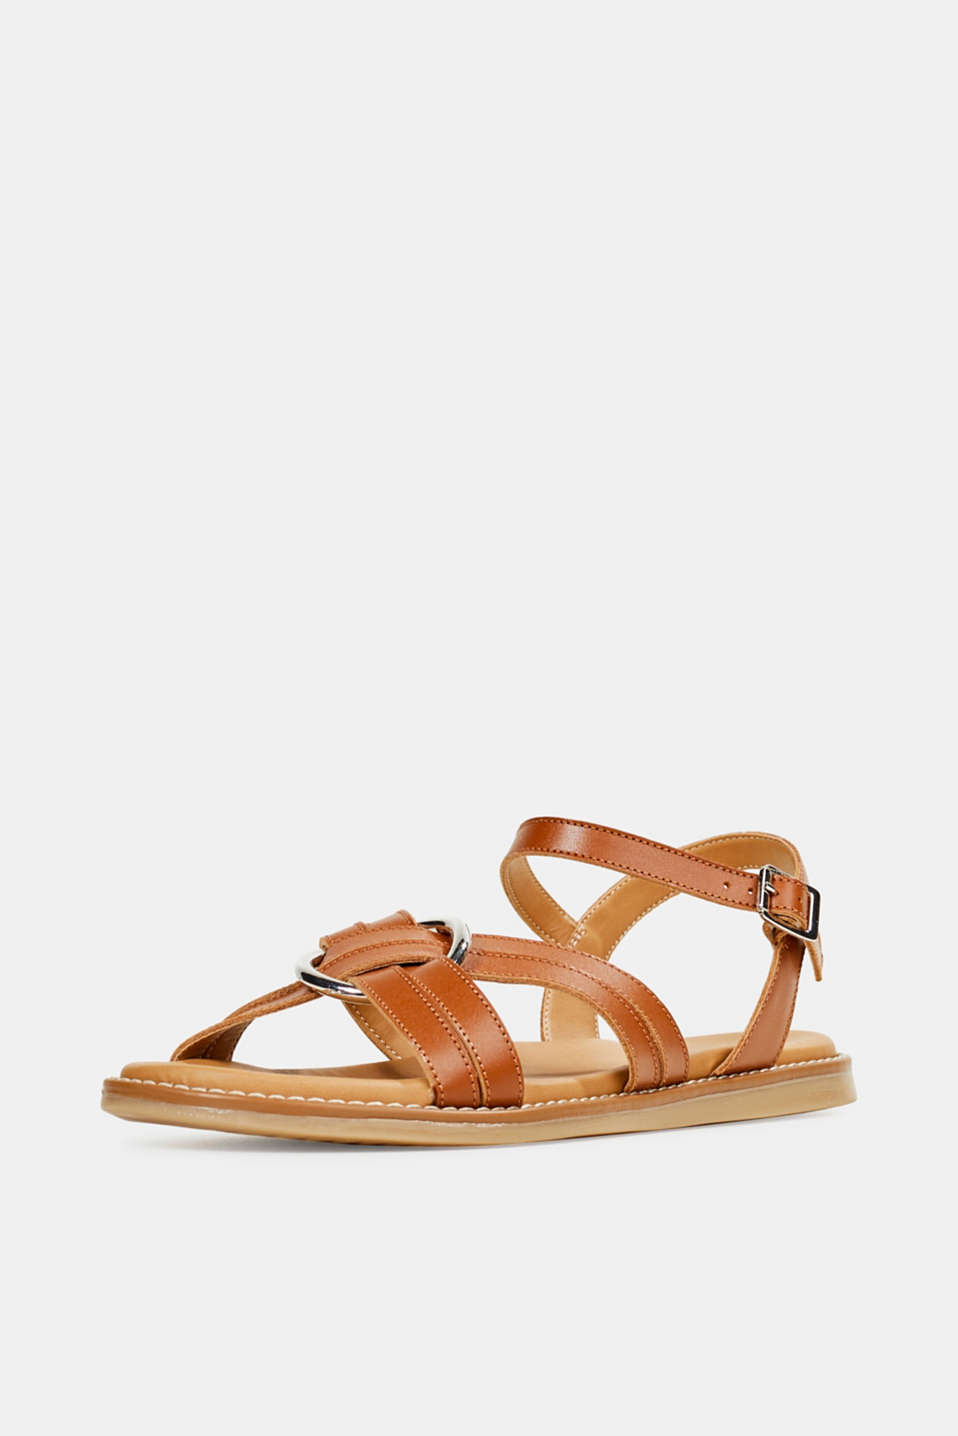 Sandals with crossed-over straps, CARAMEL, detail image number 2